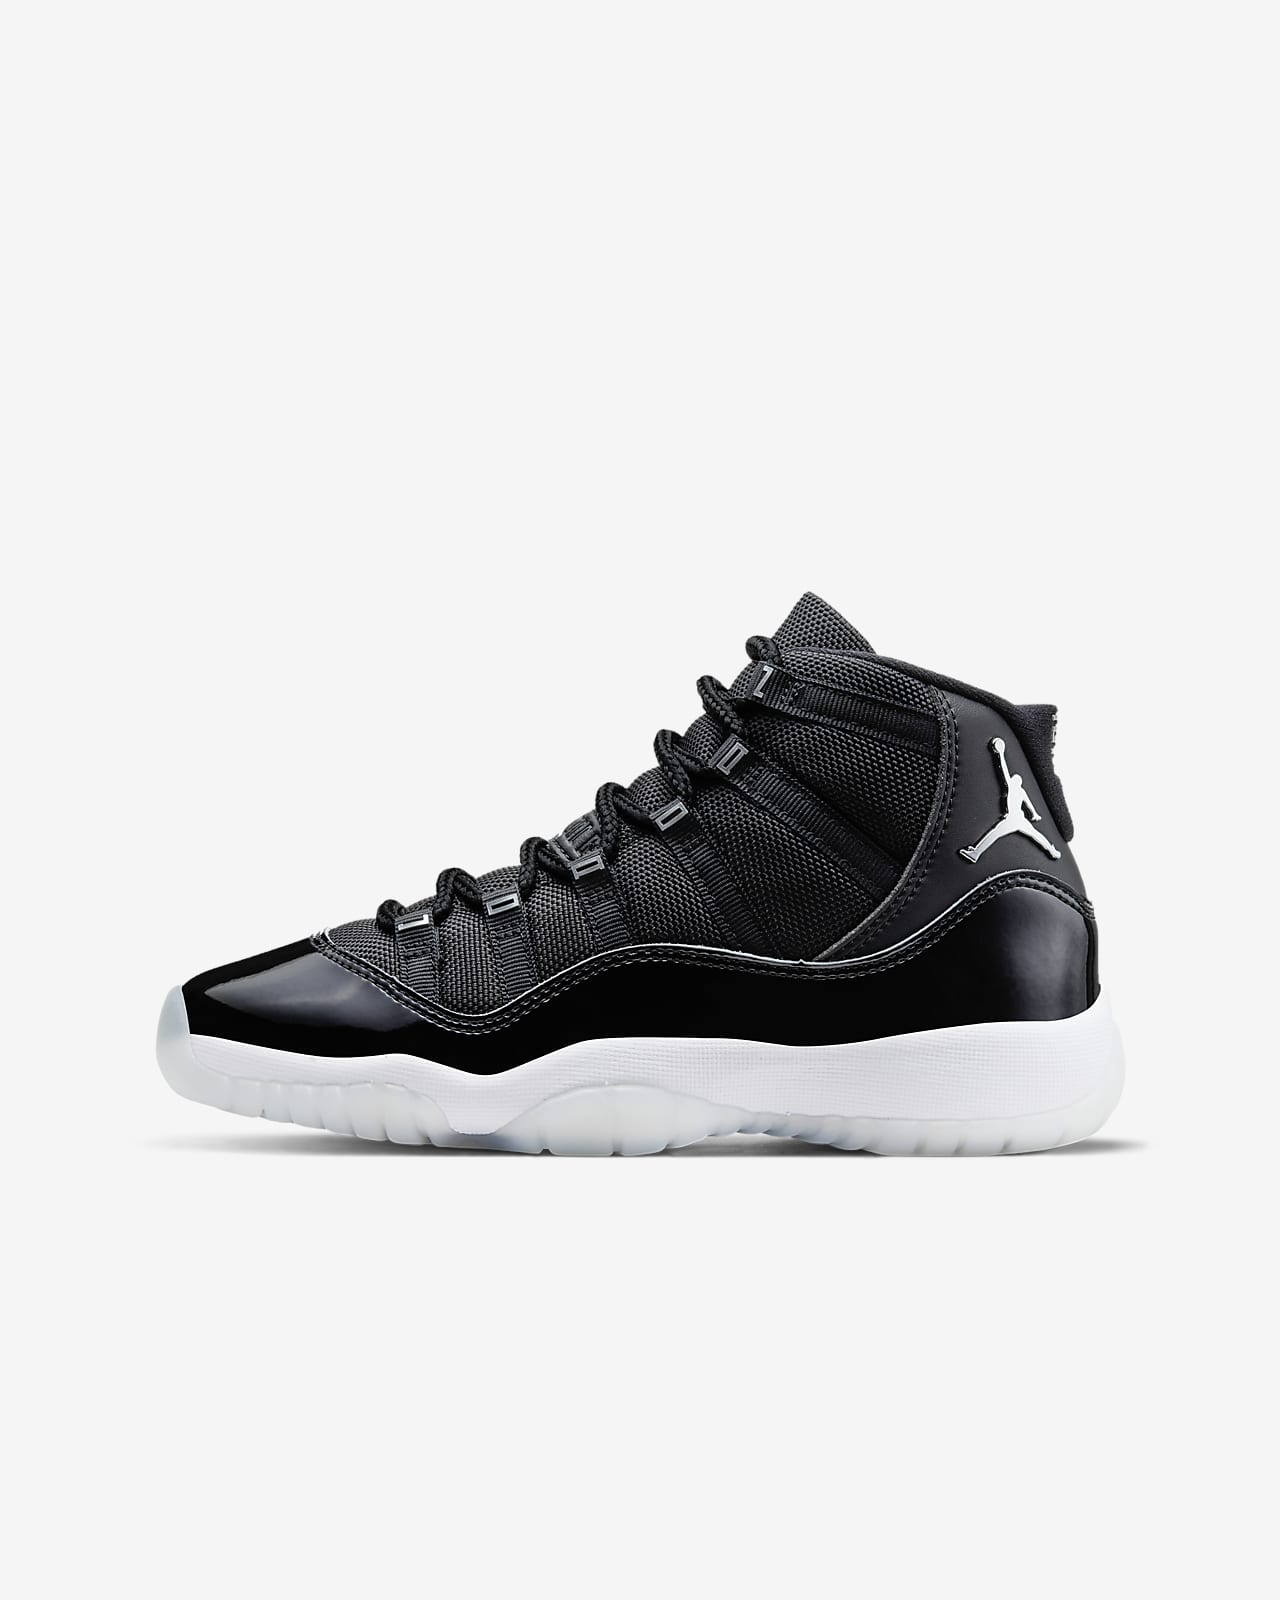 Air Jordan 11 Retro Big Kids' Shoe